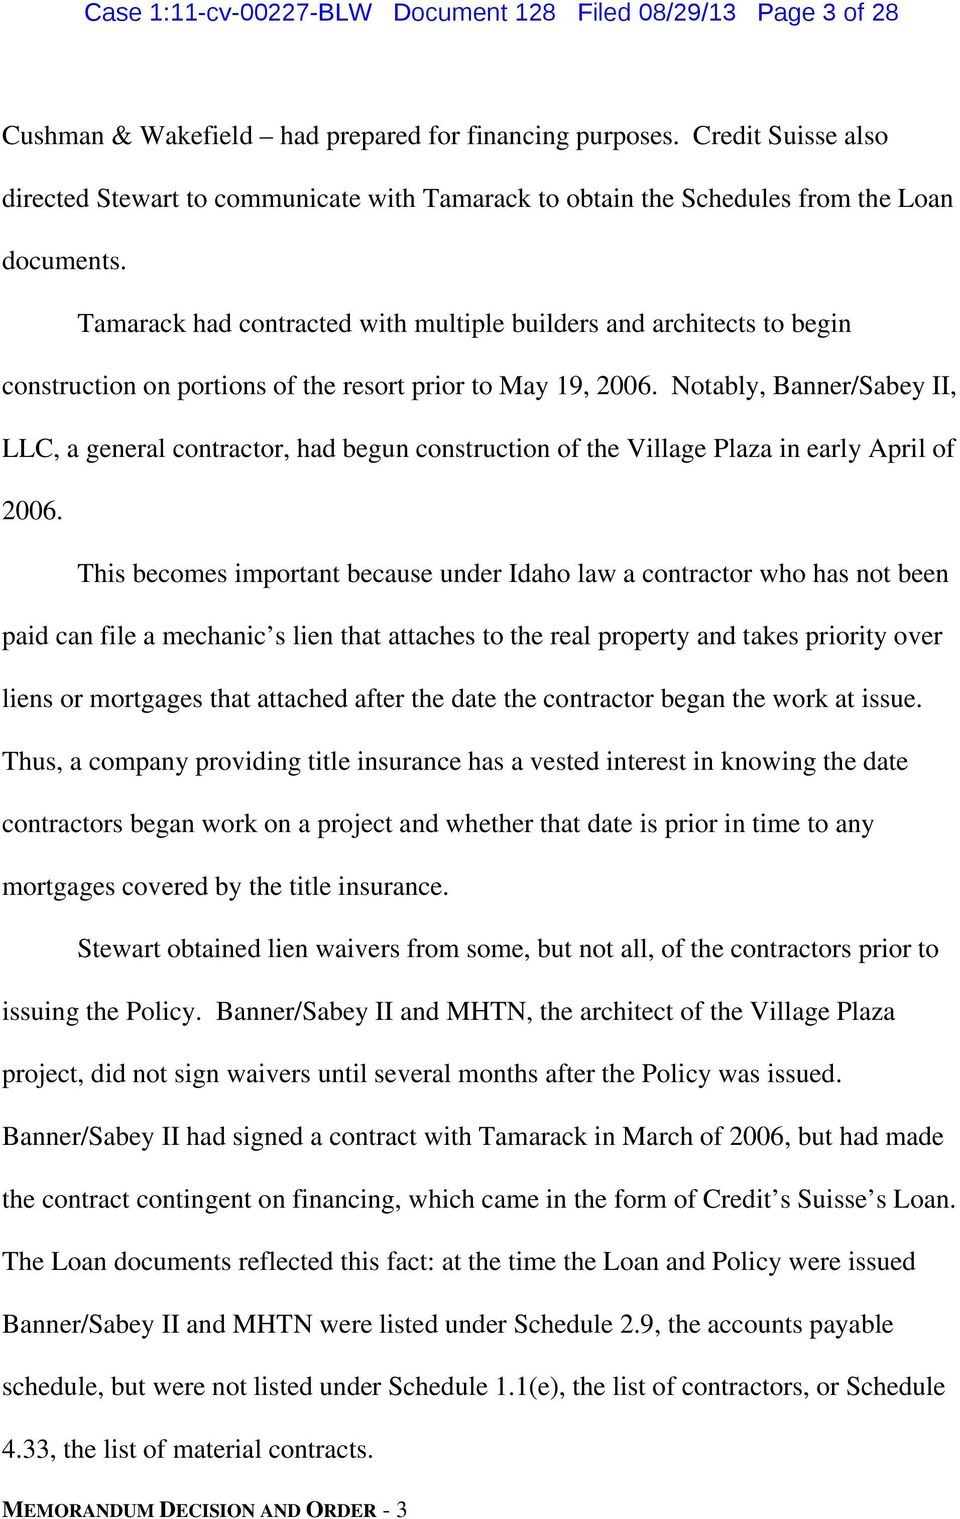 Tamarack had contracted with multiple builders and architects to begin construction on portions of the resort prior to May 19, 2006.